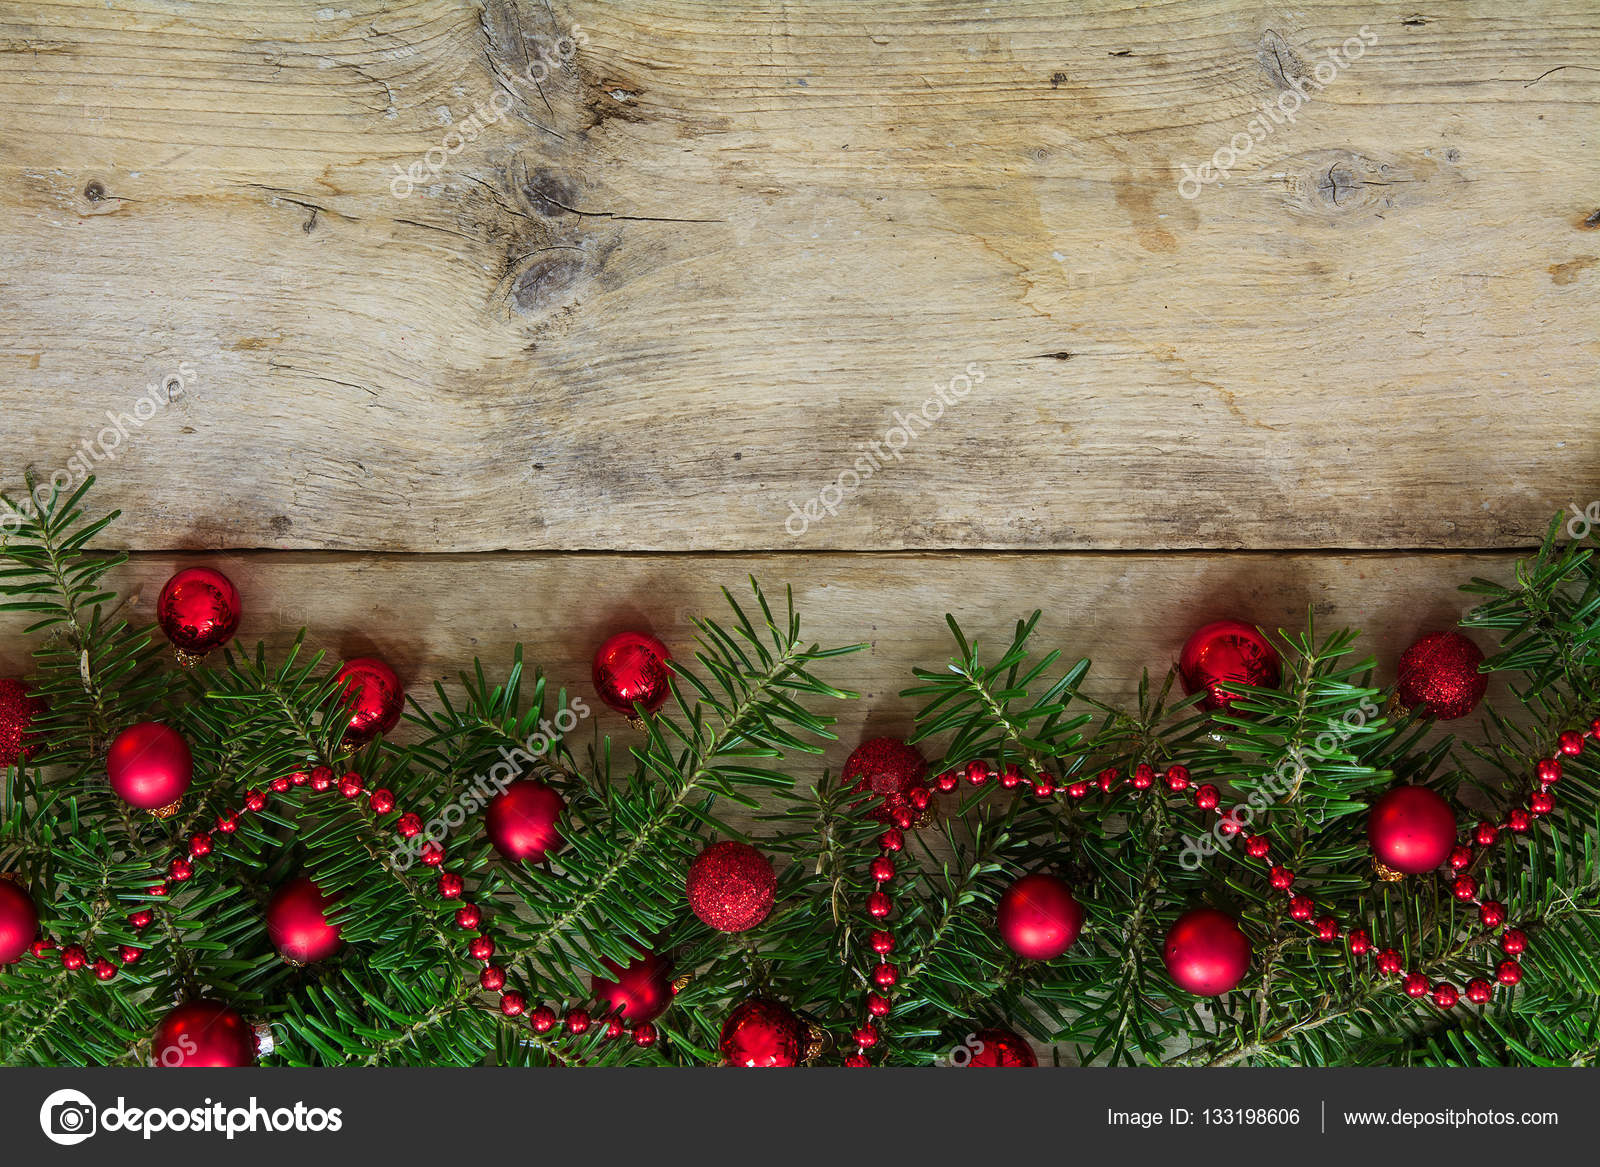 Fir Tree Branches Decorated With Red Christmas Balls As Border On A Rustic Wooden Board Holiday Background Frame Copy Space Photo By Fermate